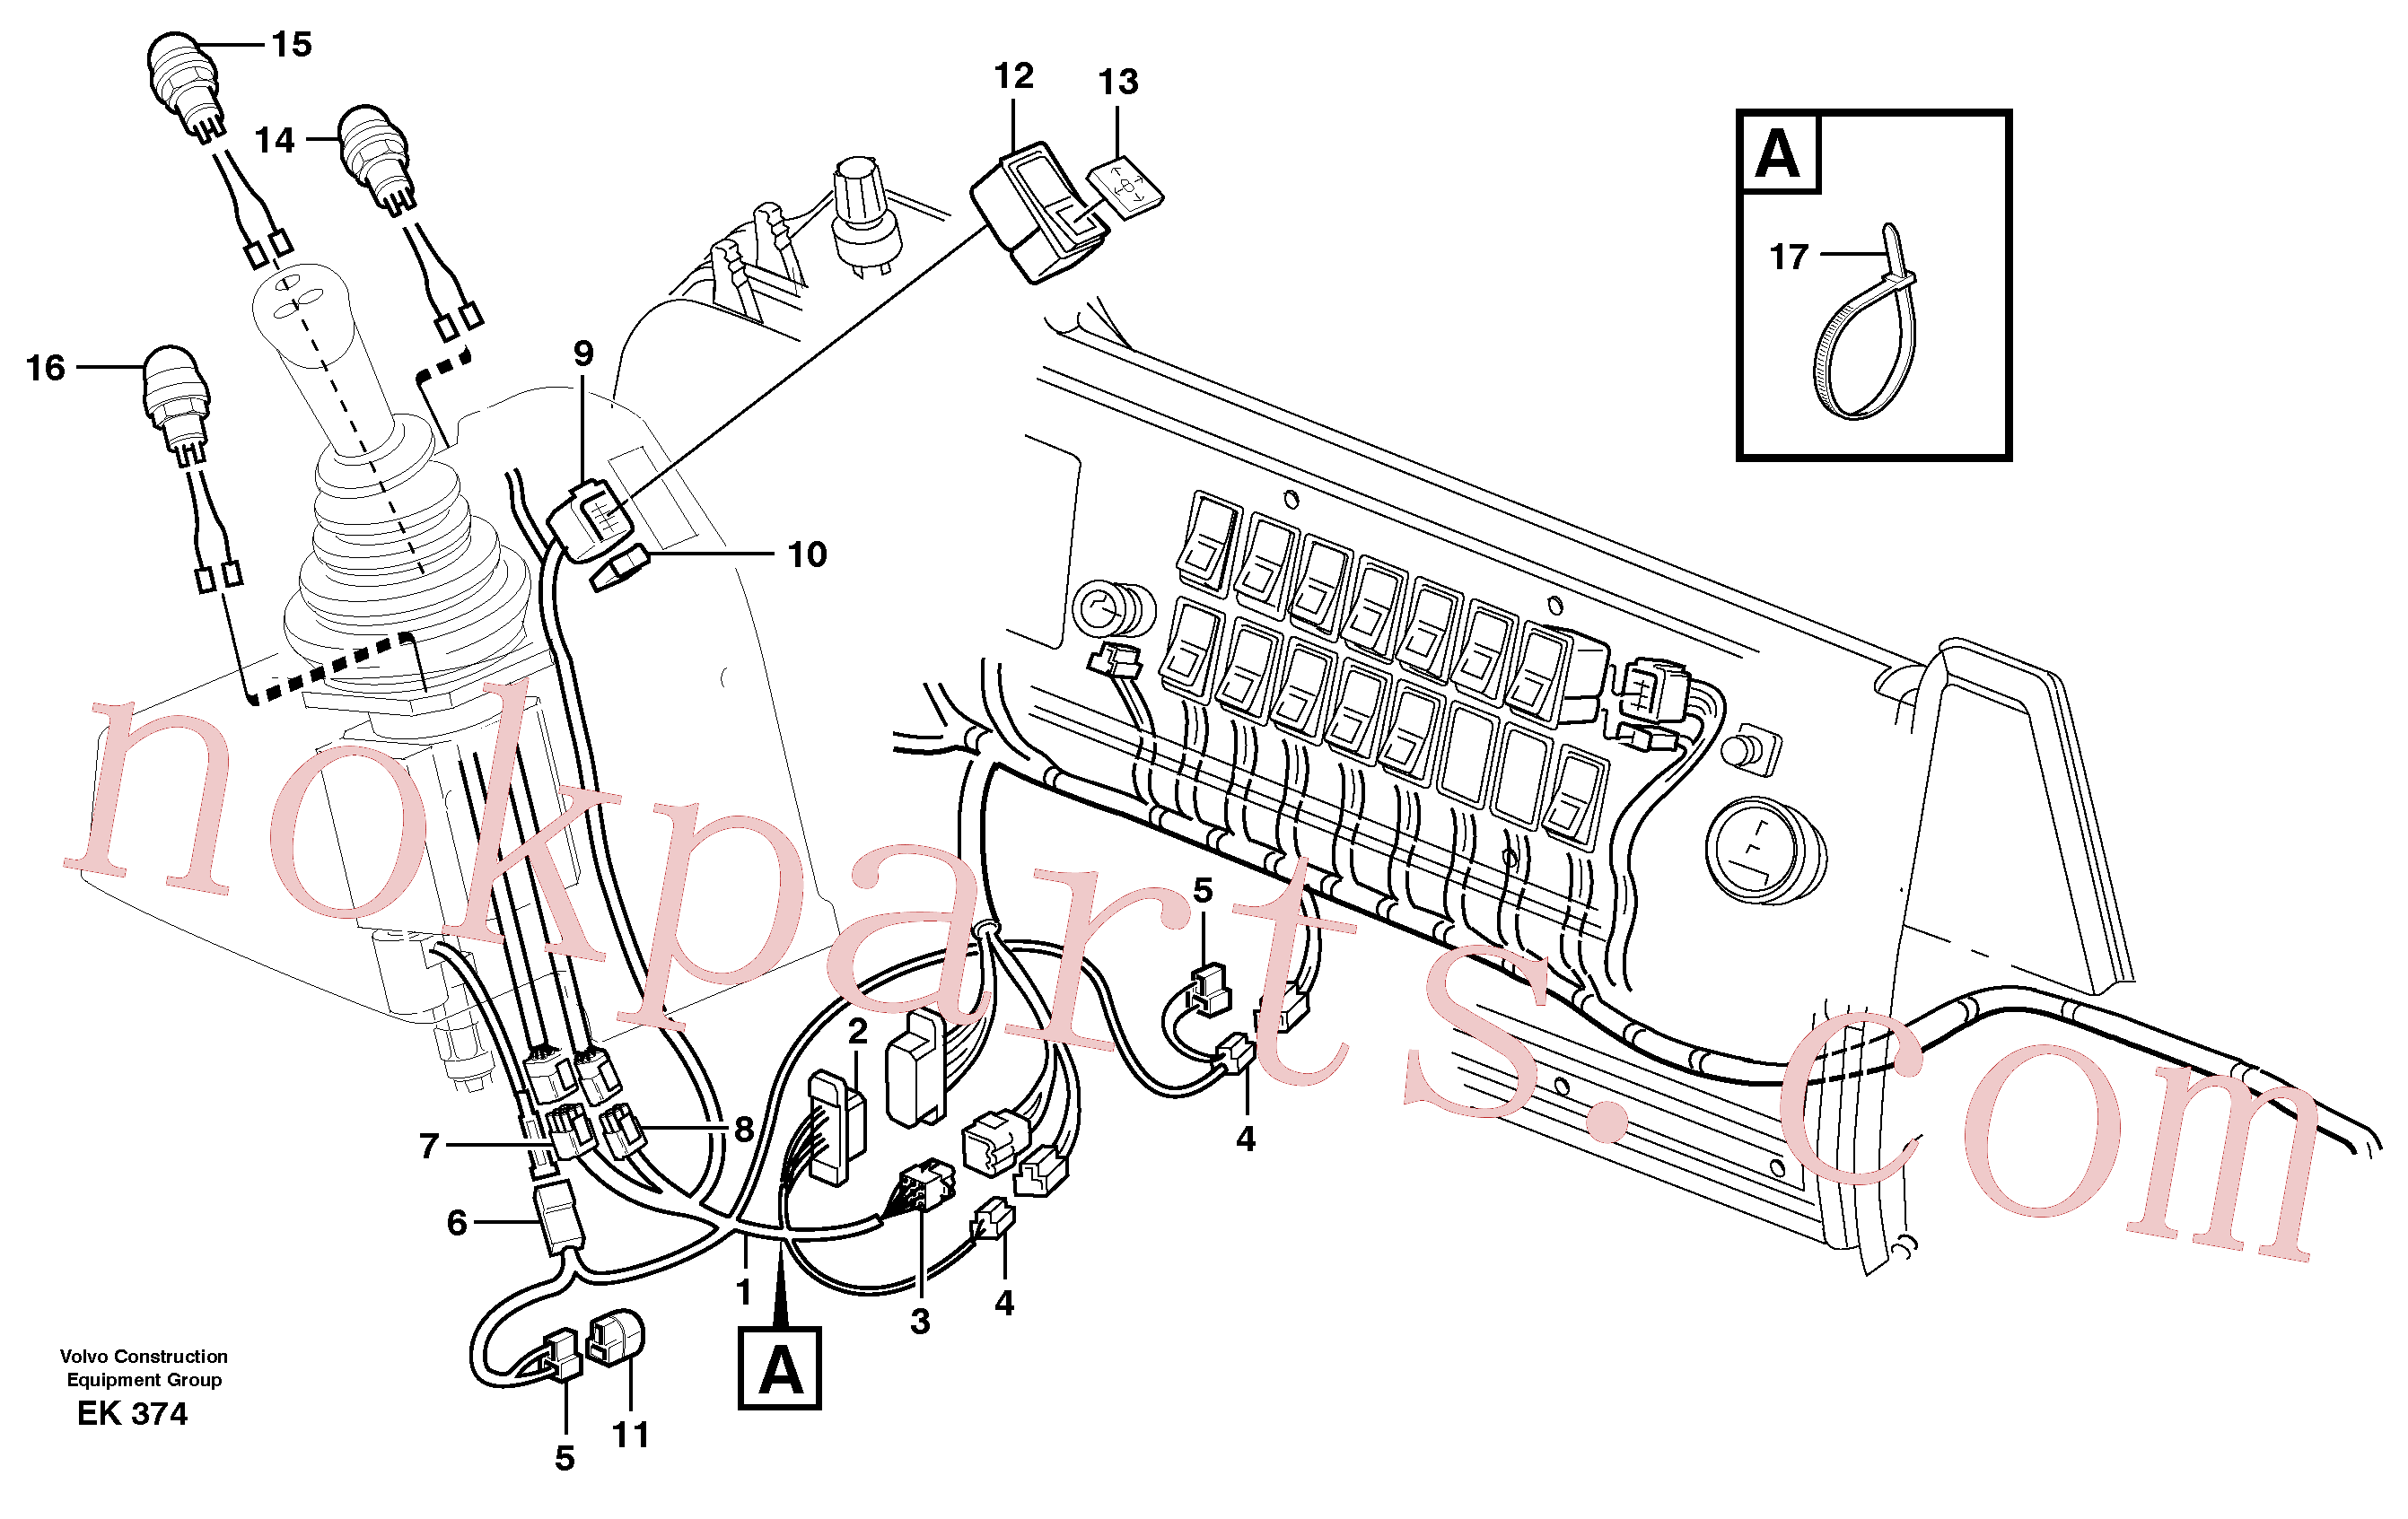 VOE948294 for Volvo Cable harnesses, single lever control.(EK374 assembly)